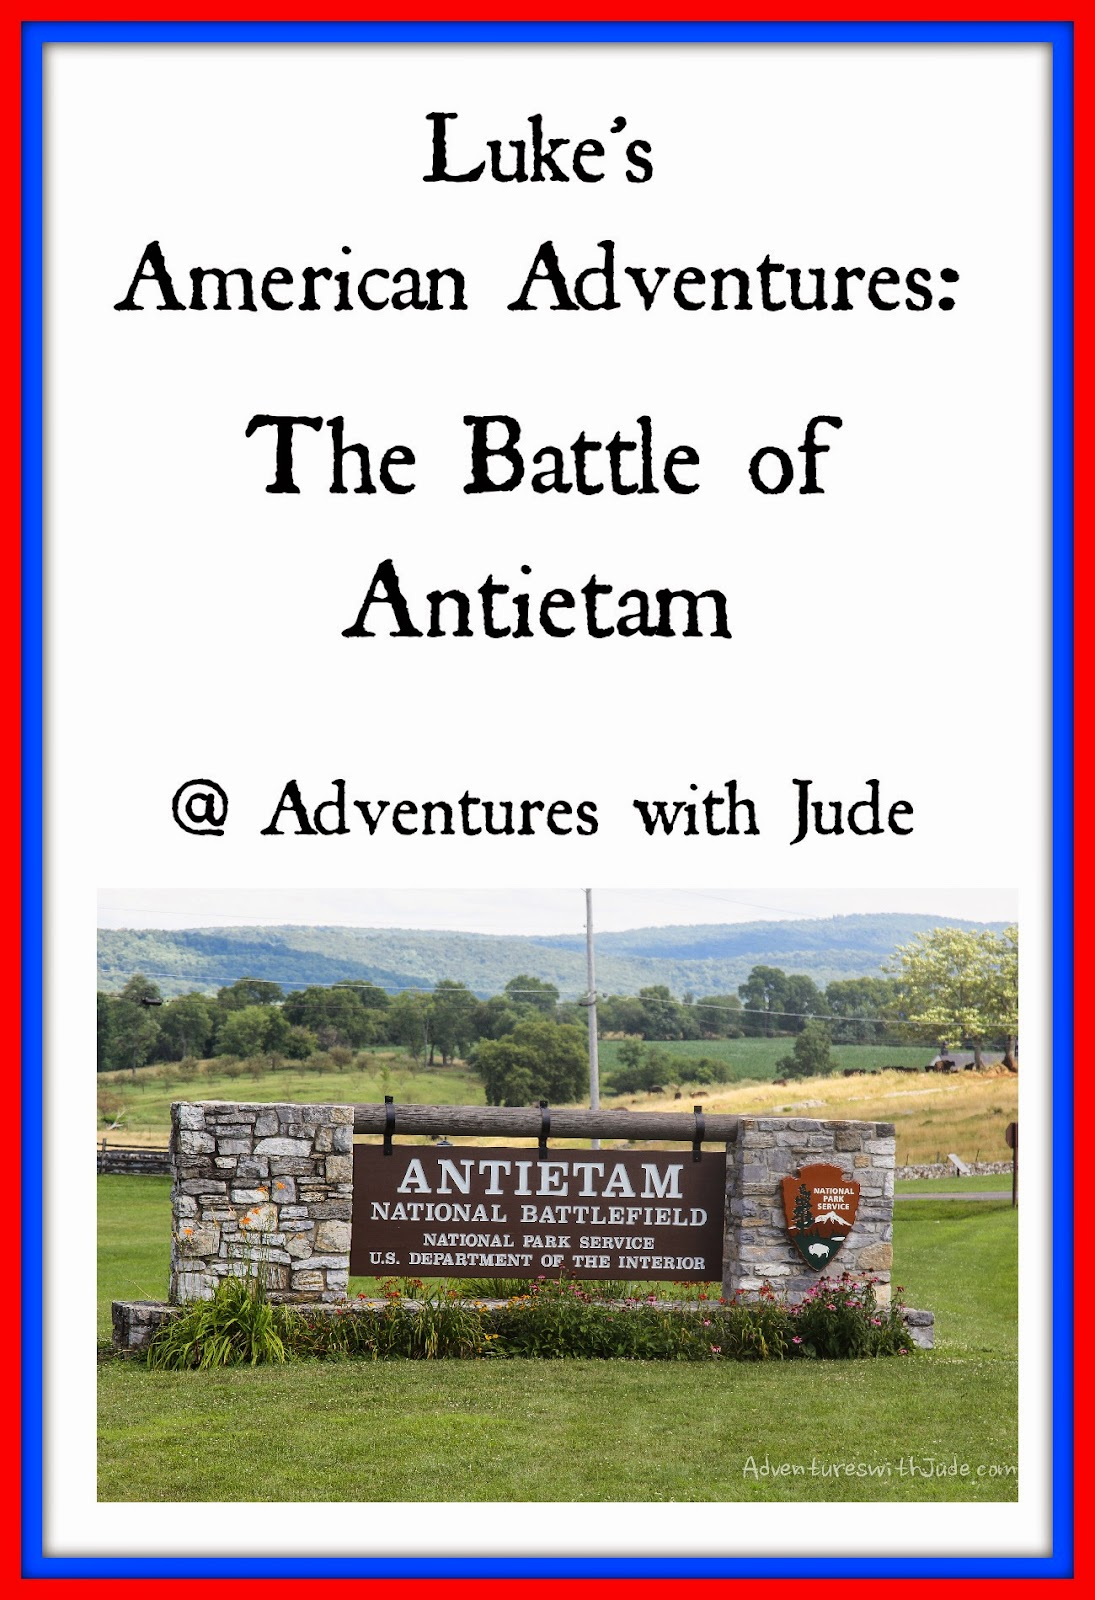 what costly mistake did the confederacy make before the battle of antietam The battle of monocacy (also known as monocacy junction) was fought on july 9, 1864, just outside frederick, maryland, as part of the valley campaigns of 1864, in the american civil war.